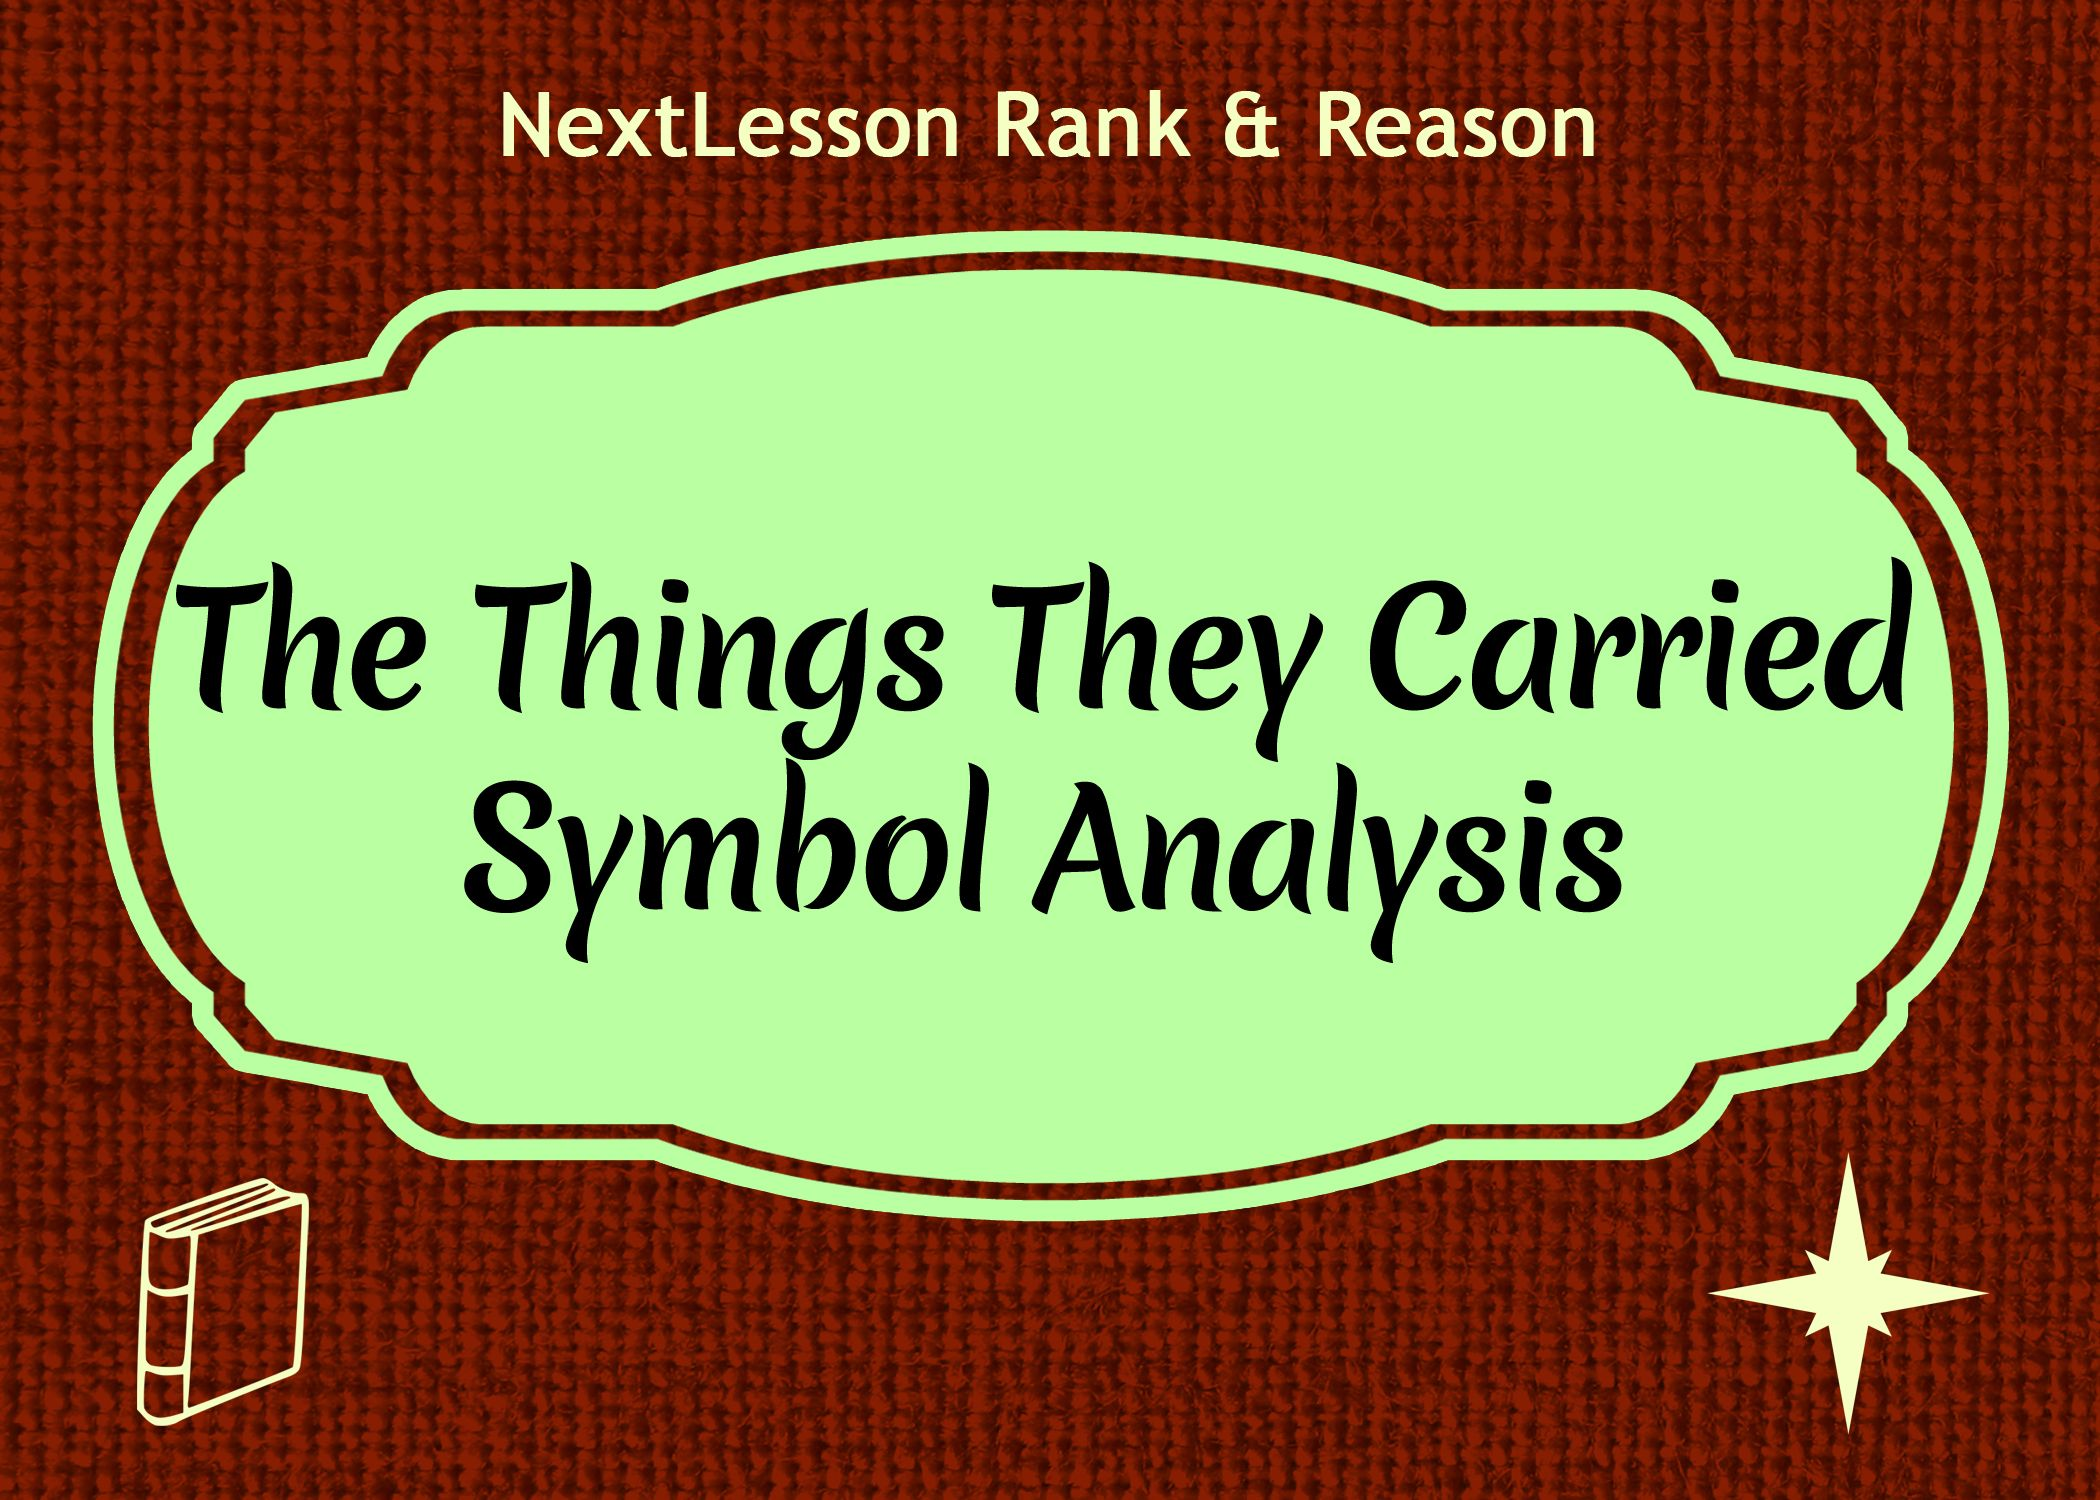 literary analysis tim o brien Tim o'brien's the things they carried has 432 ratings and 59 reviews   reading and study guides for some of the world's most important literary  masterpieces.